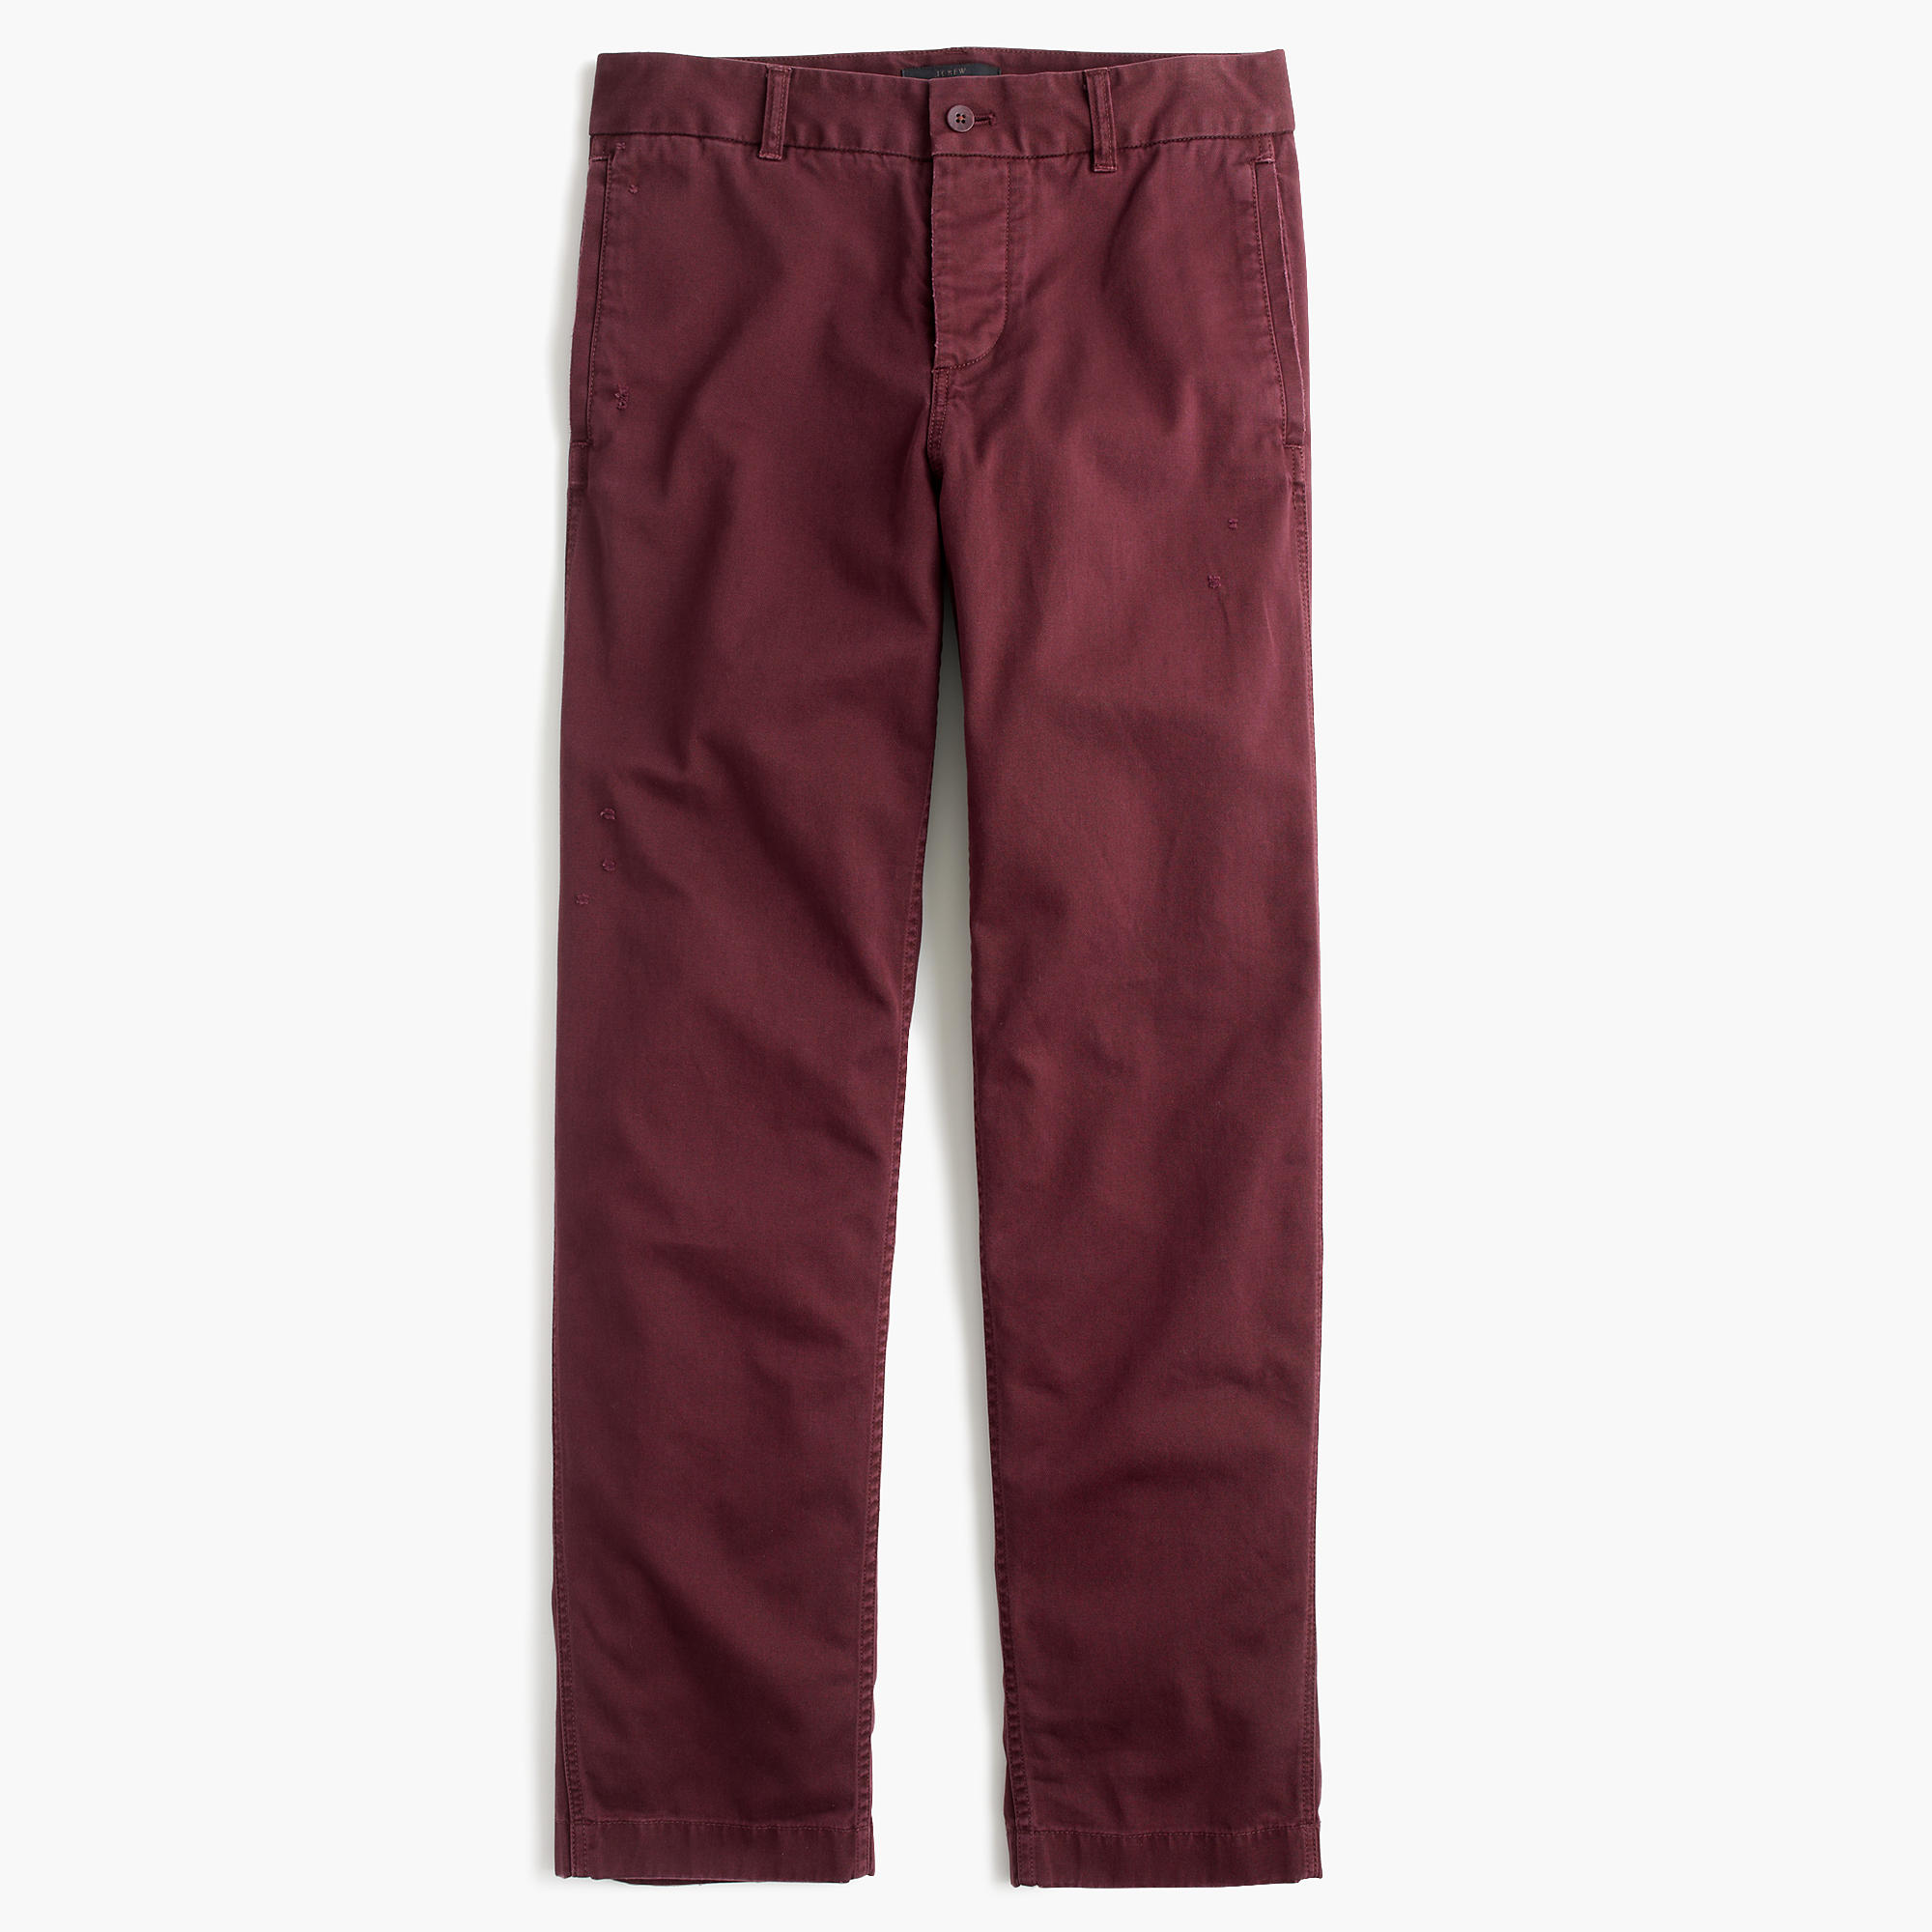 Cool Scout Chino  Chino Amp Cotton Pants  JCrew